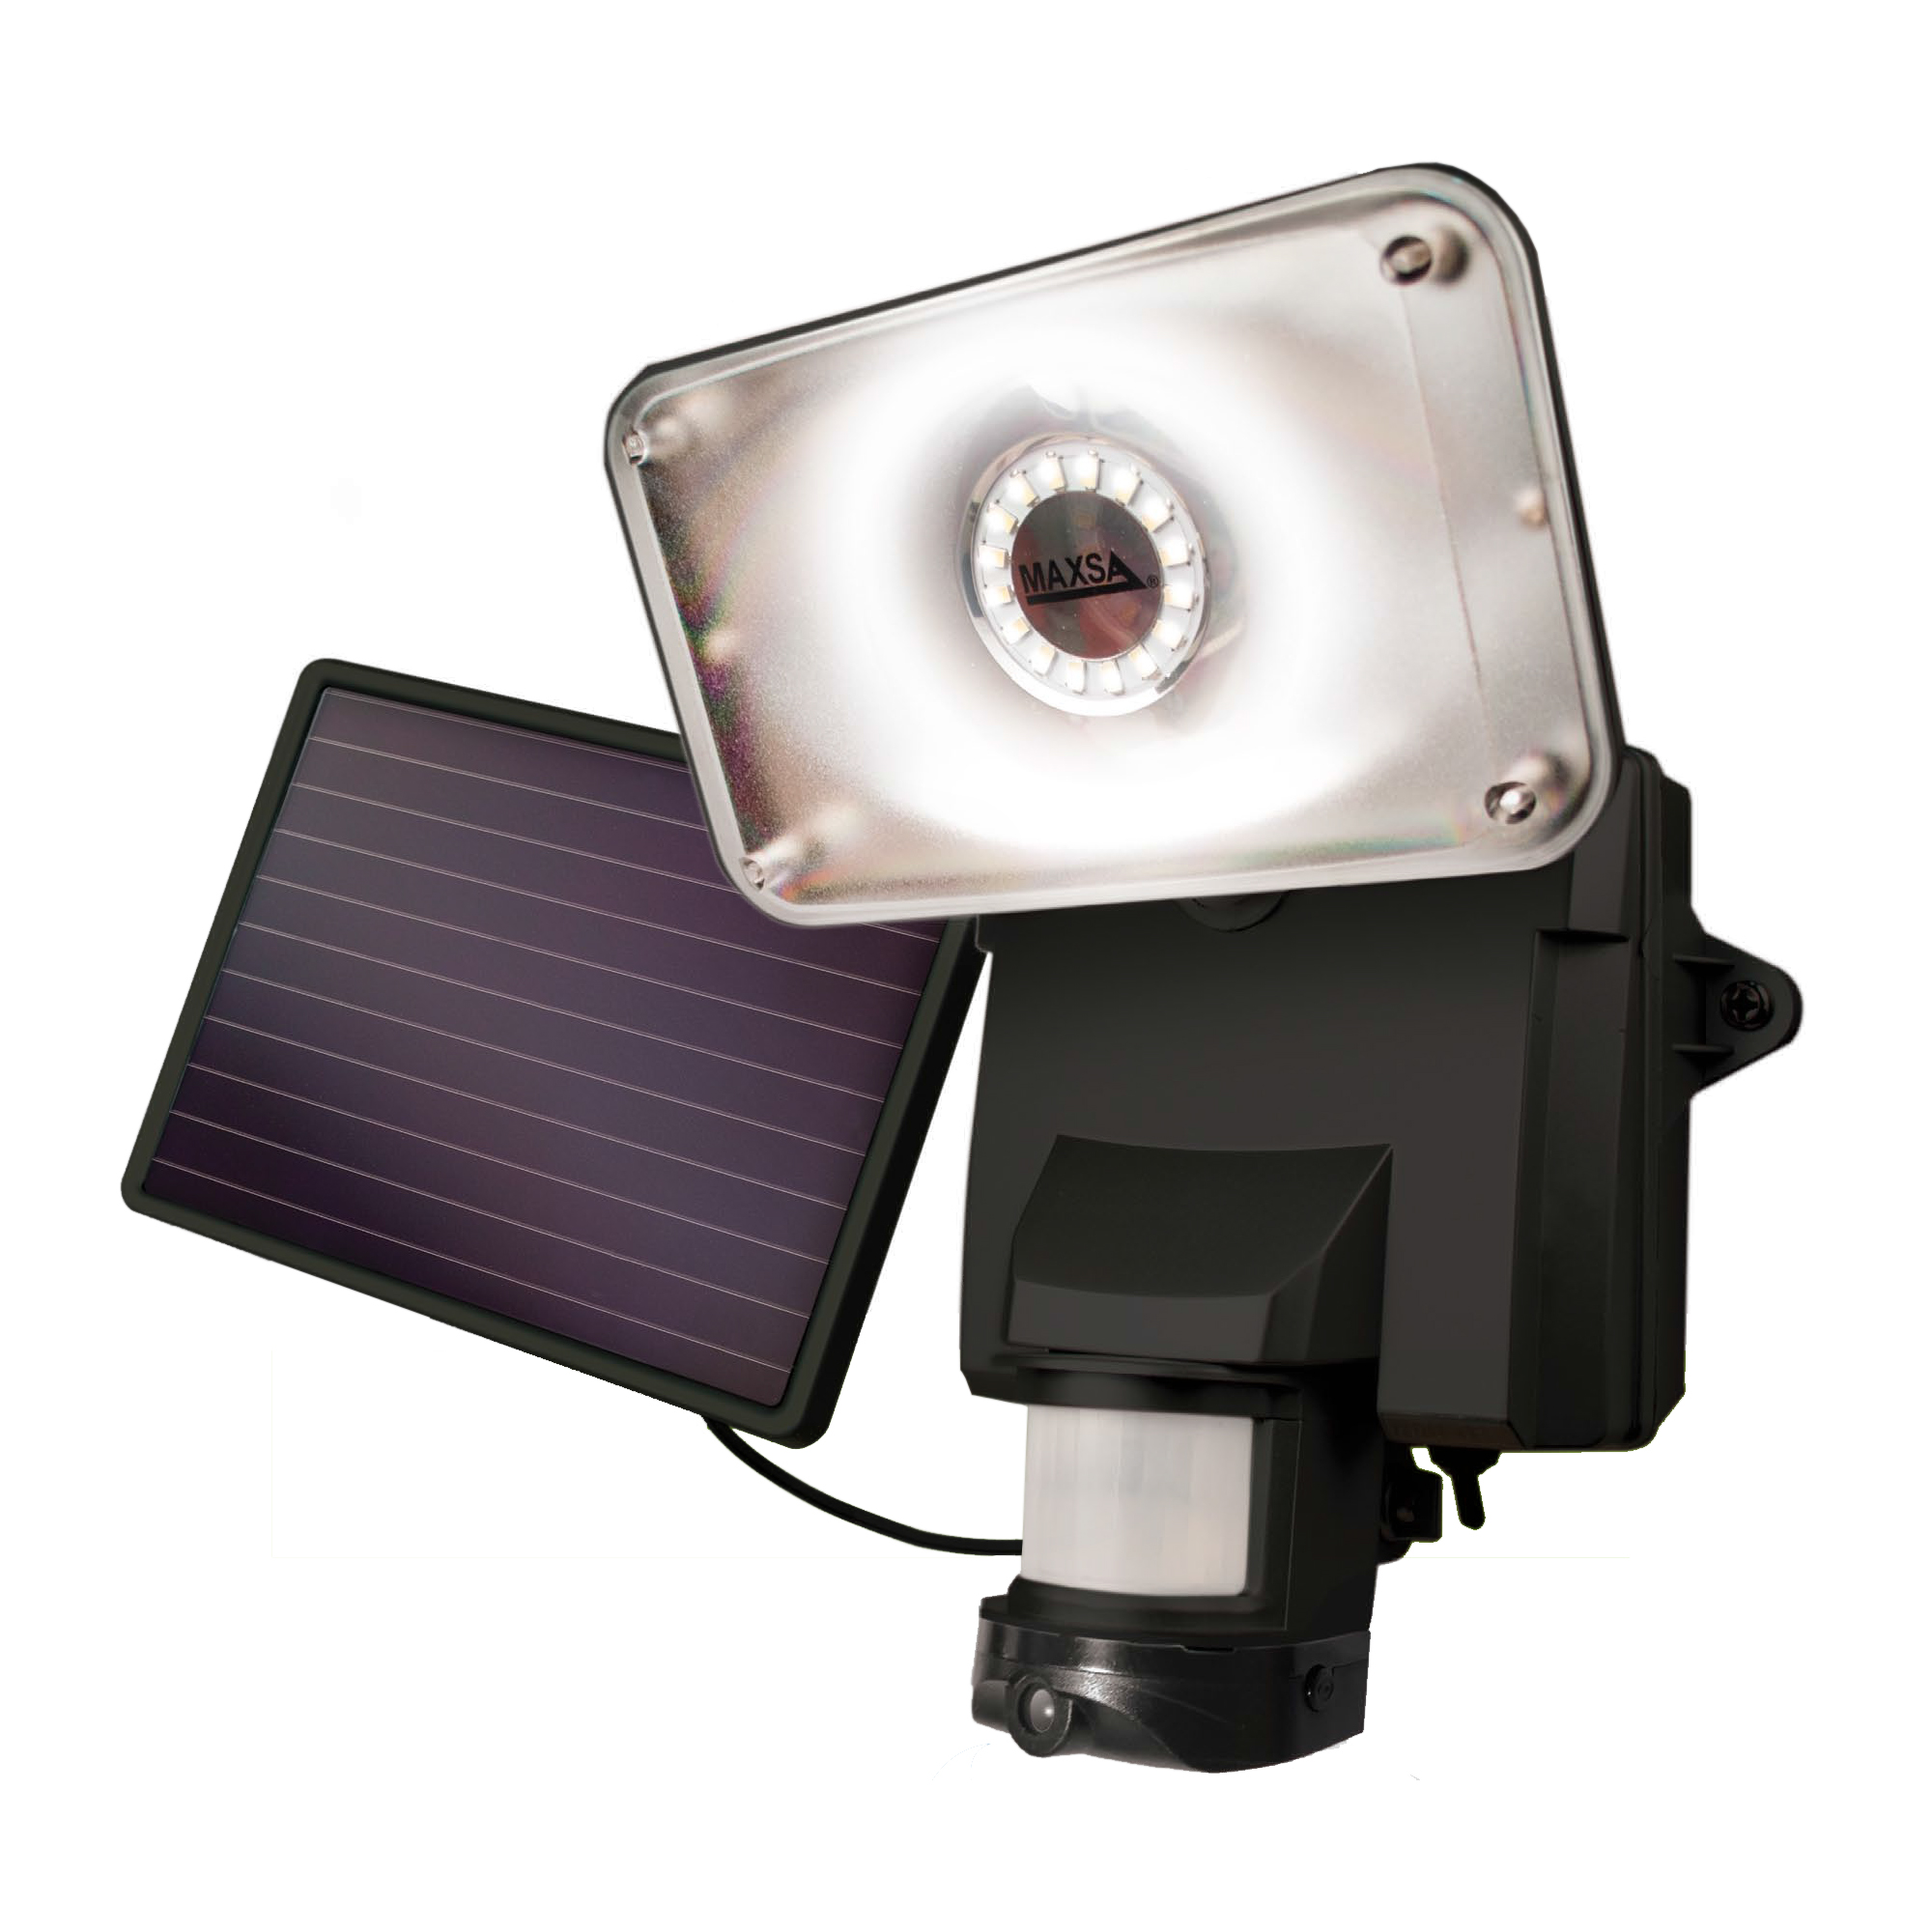 44642-video-camera-floodlight-product-shot.jpg